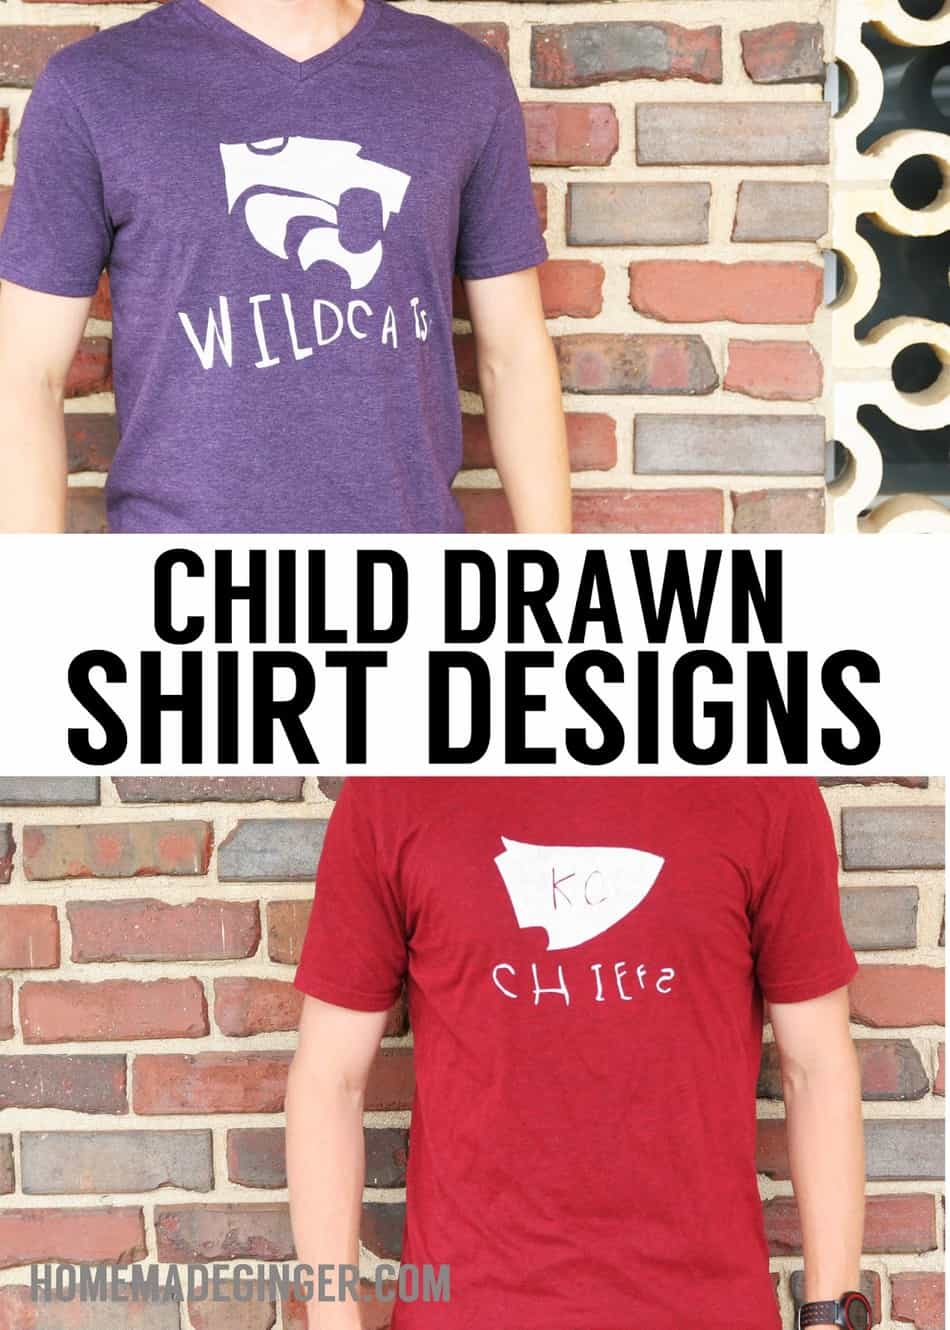 Child Drawn Shirt Designs Homemade Ginger